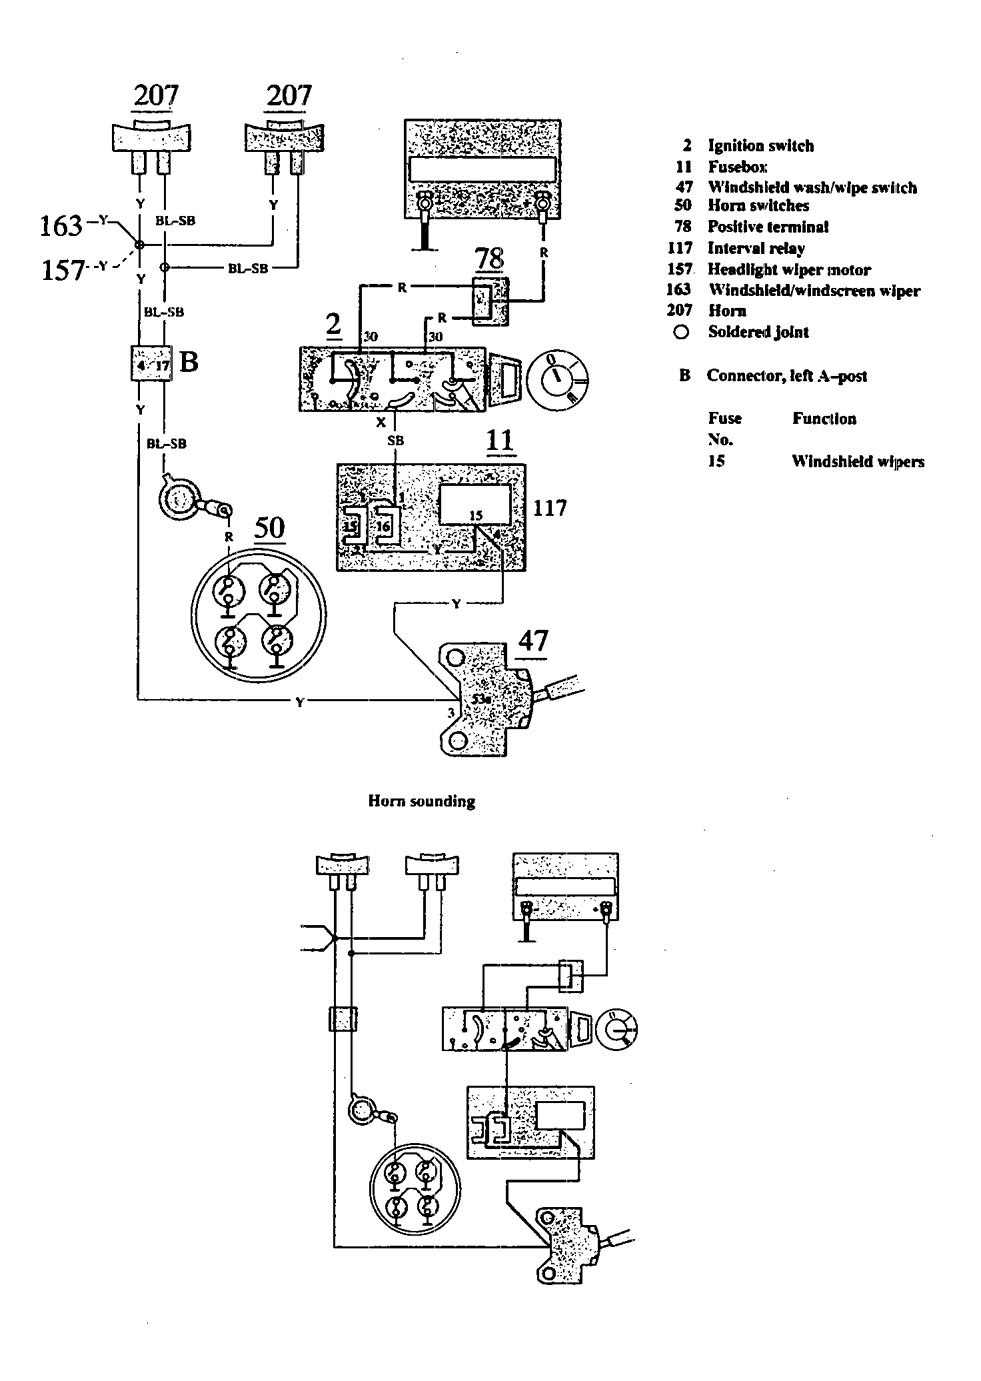 diagram  1999 plymouth van radio wiring diagram full